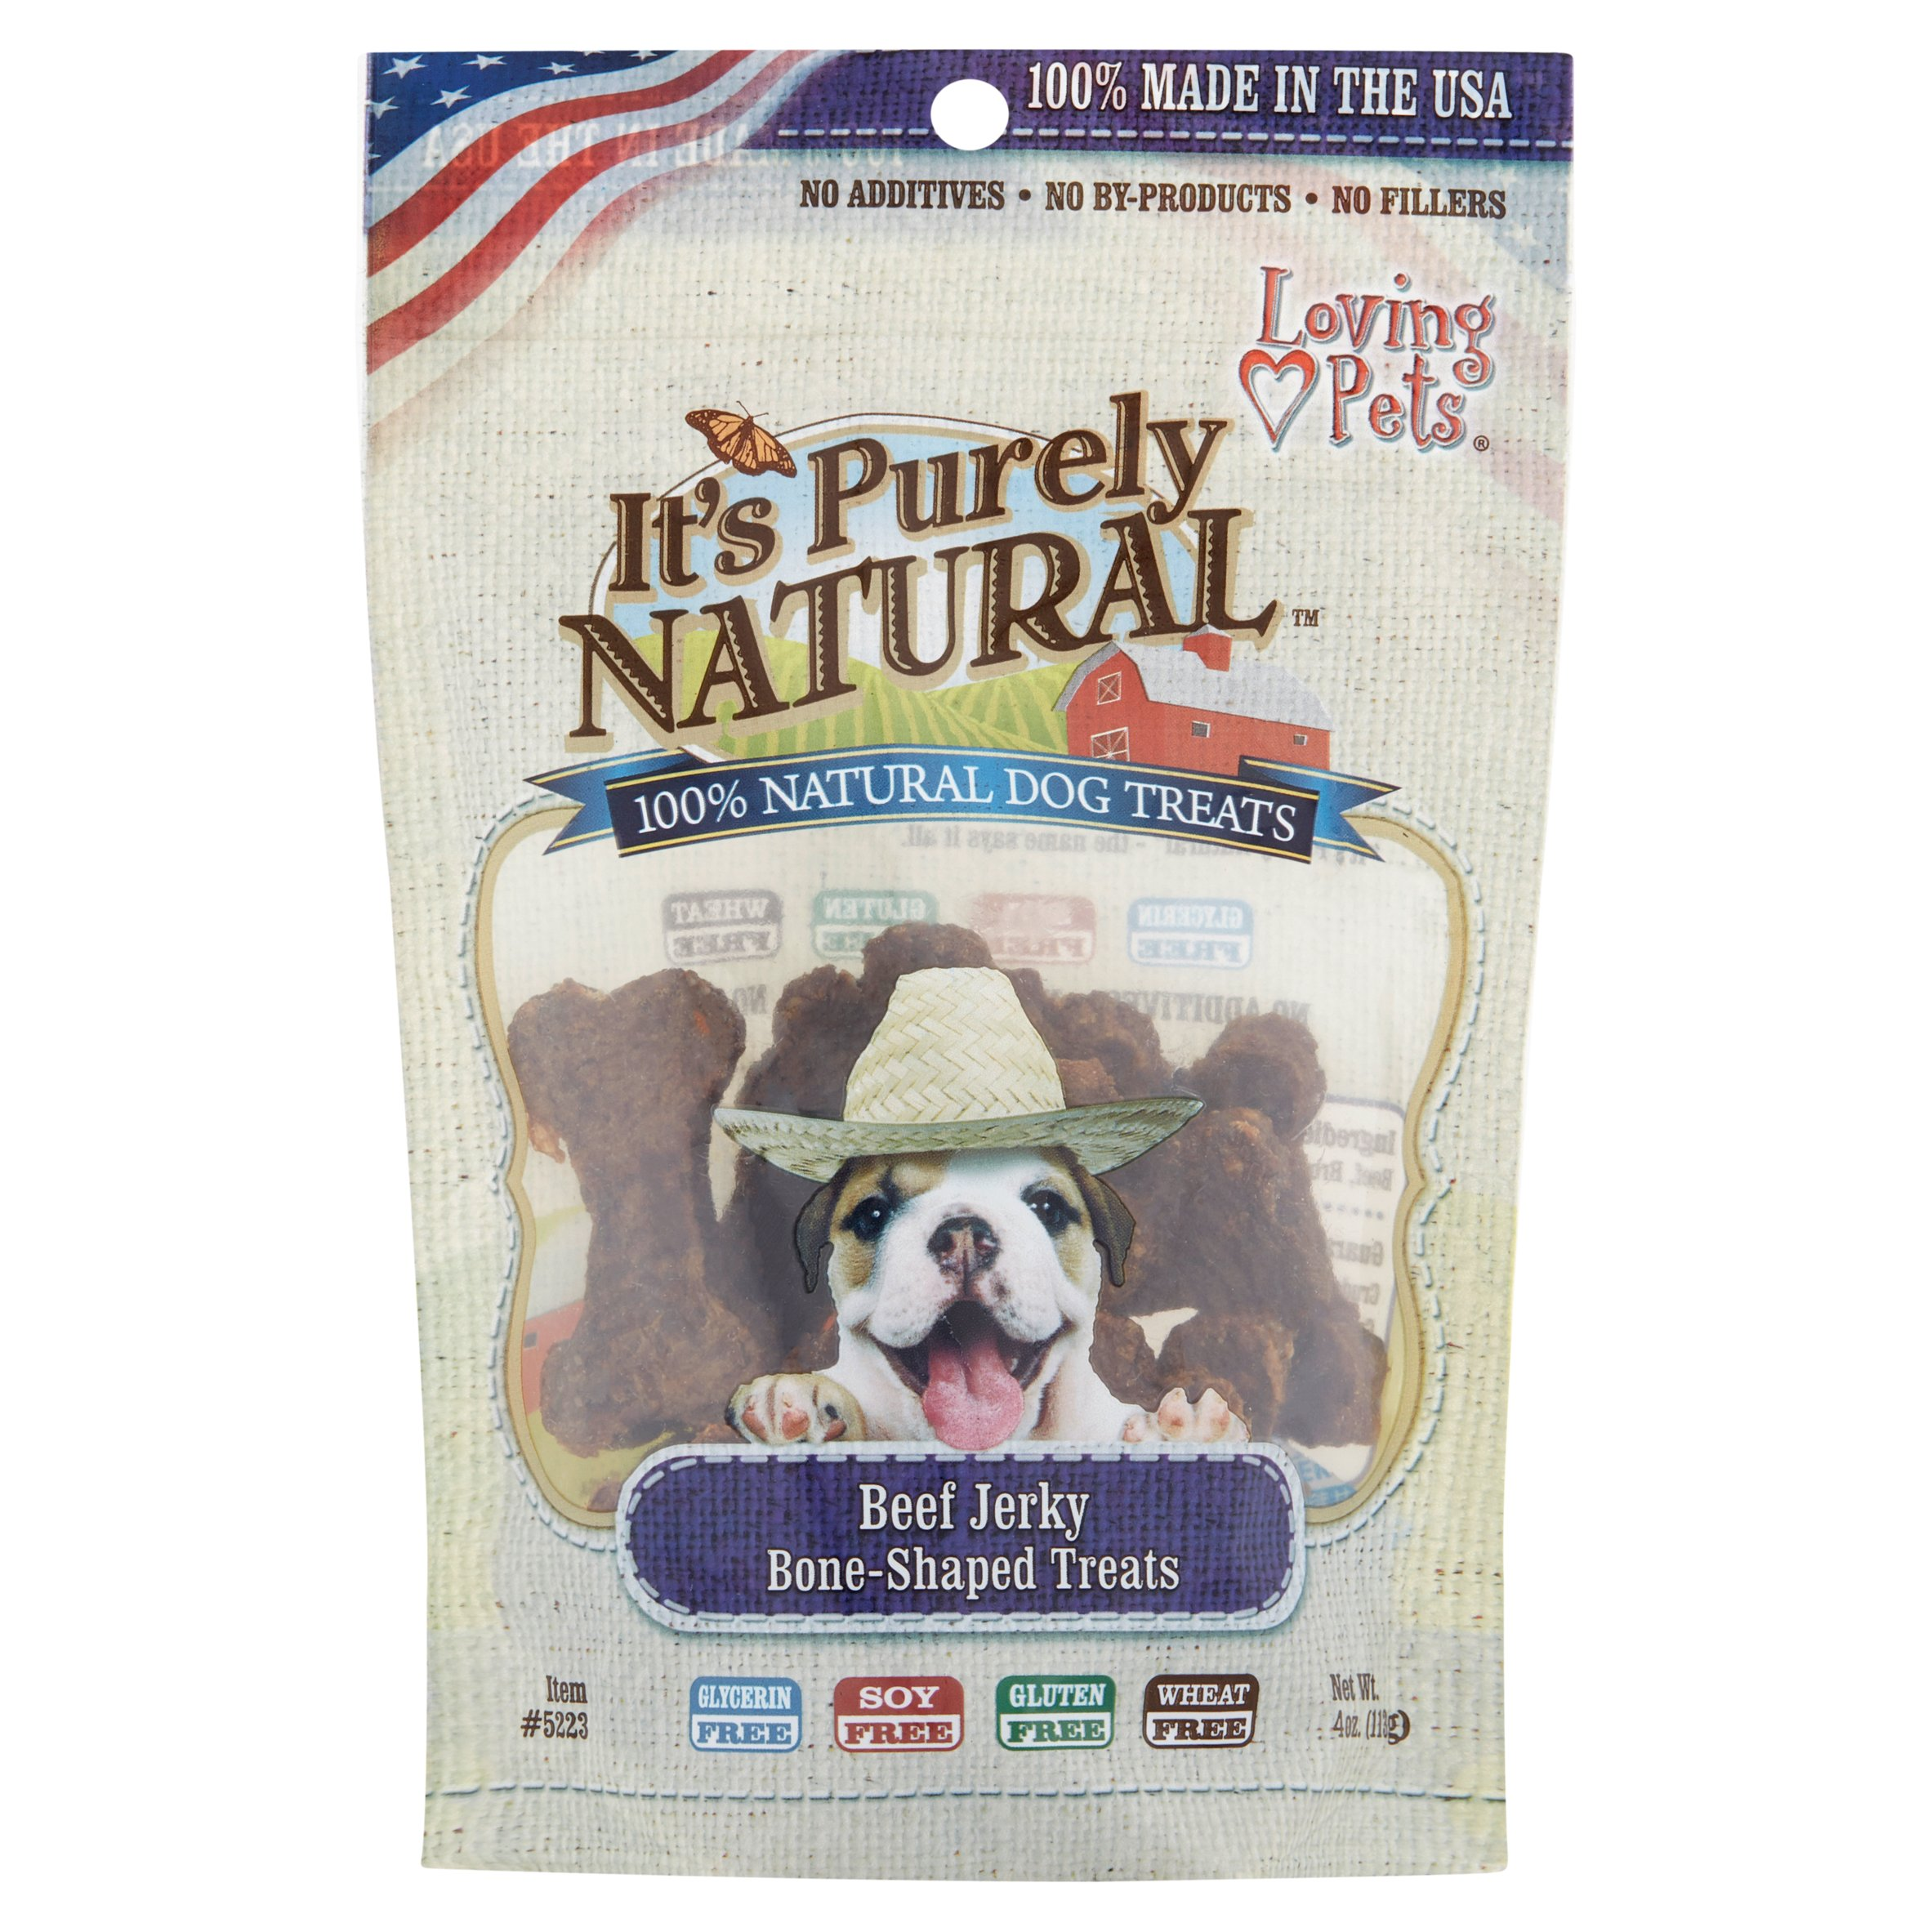 Loving Pets It's Purely Natural Beef Jerky Bone-Shaped Dog Treats, 4 oz